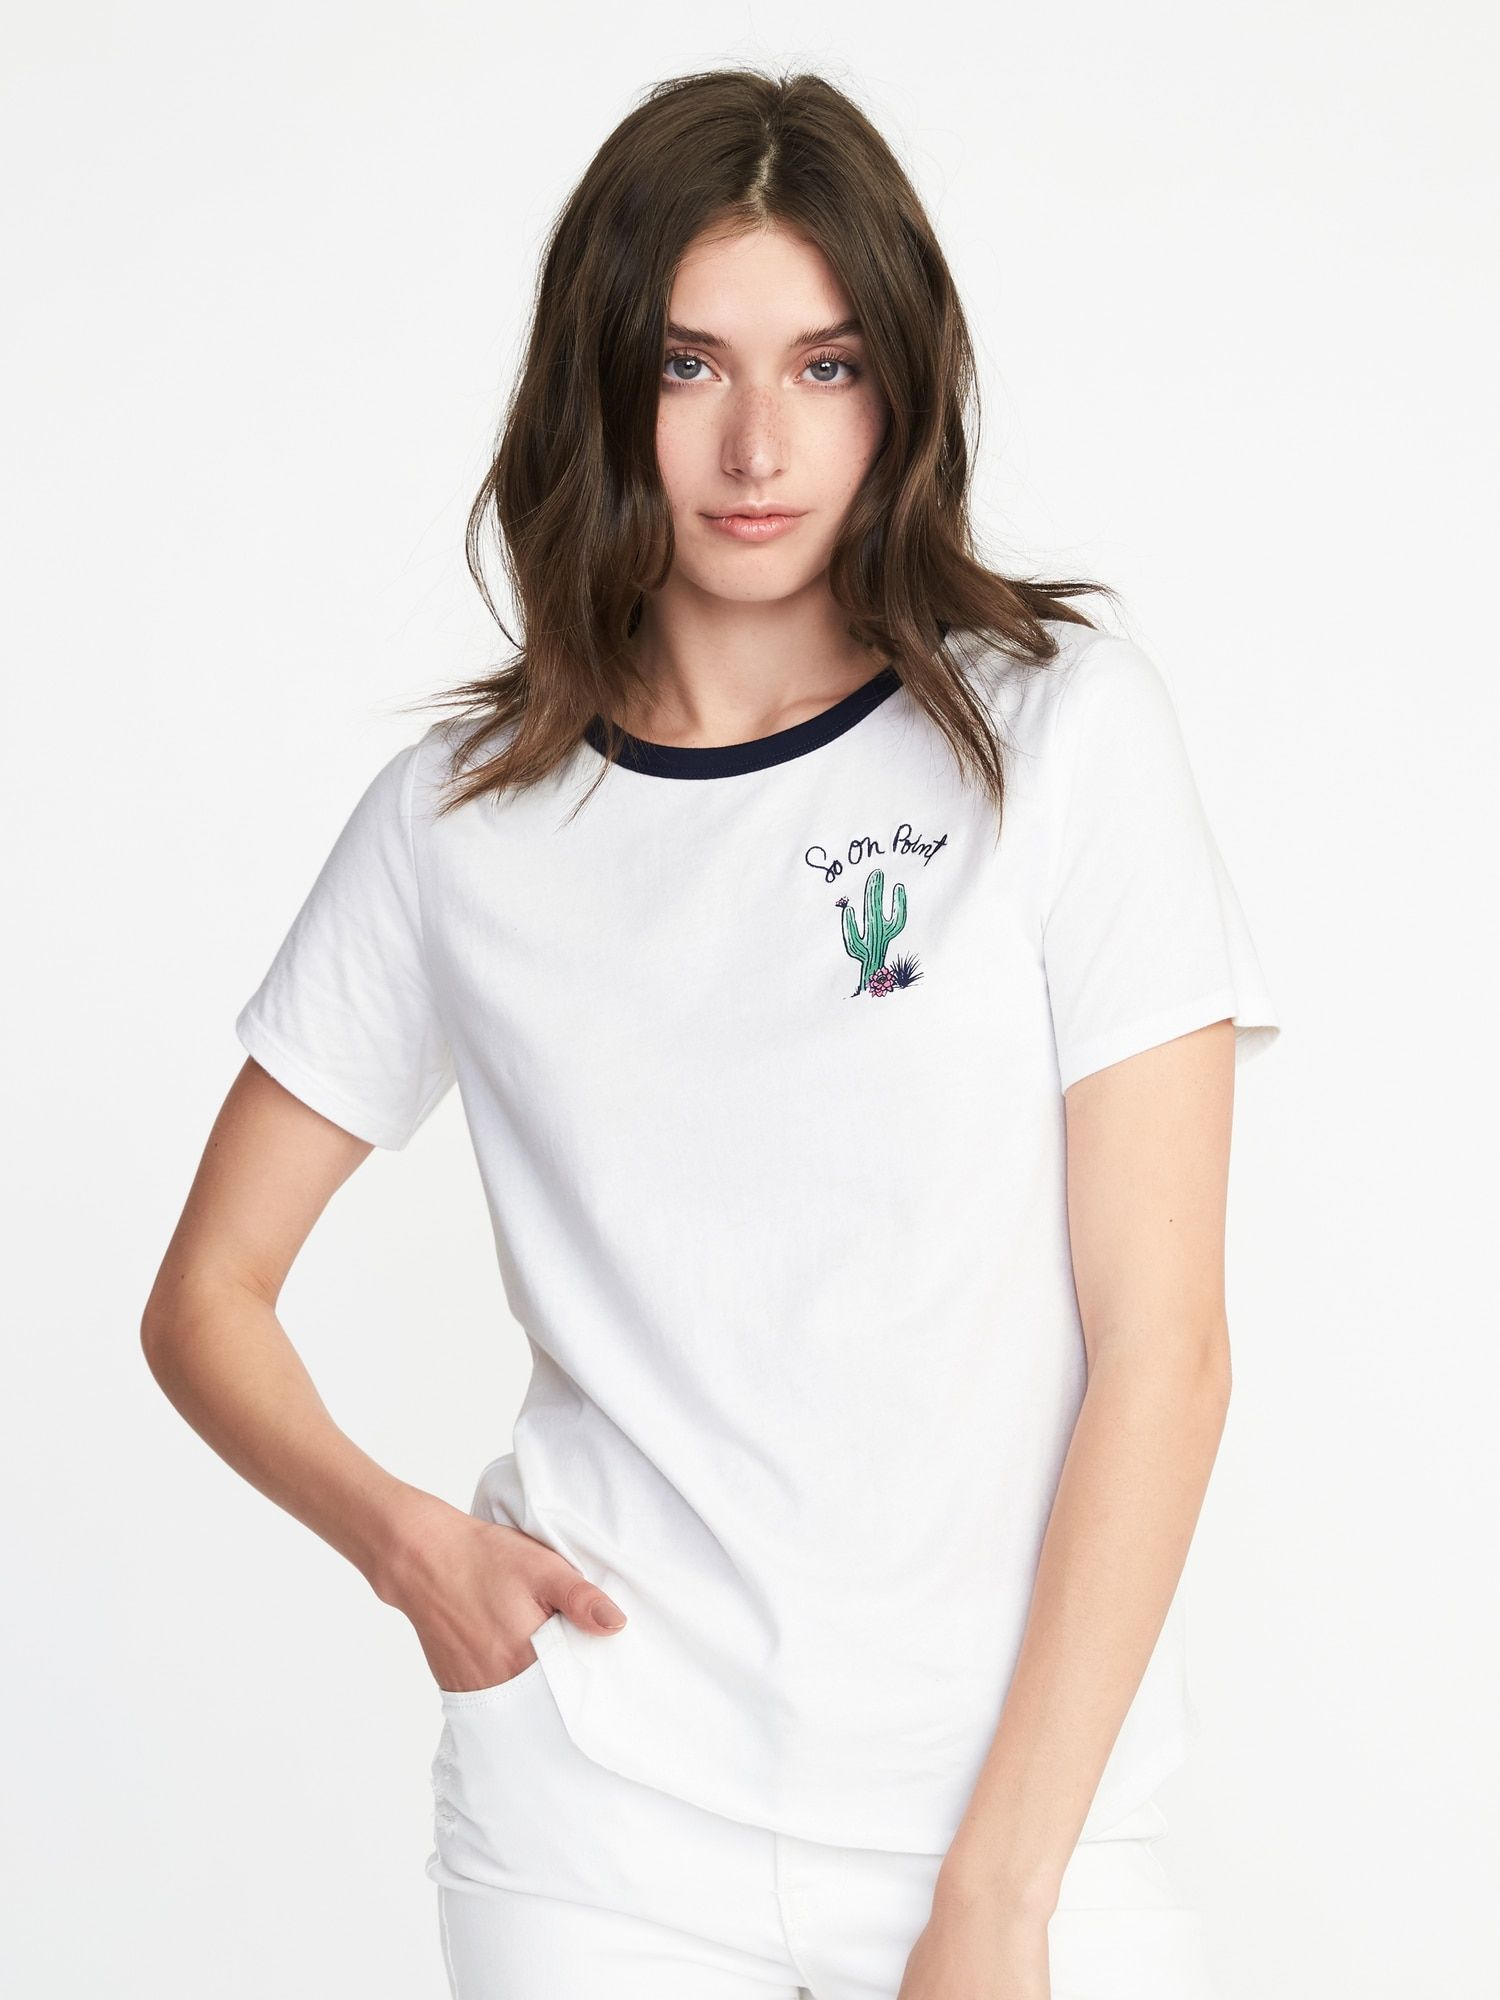 f198c7970cc49 So on point cactus graphic tee - old Navy